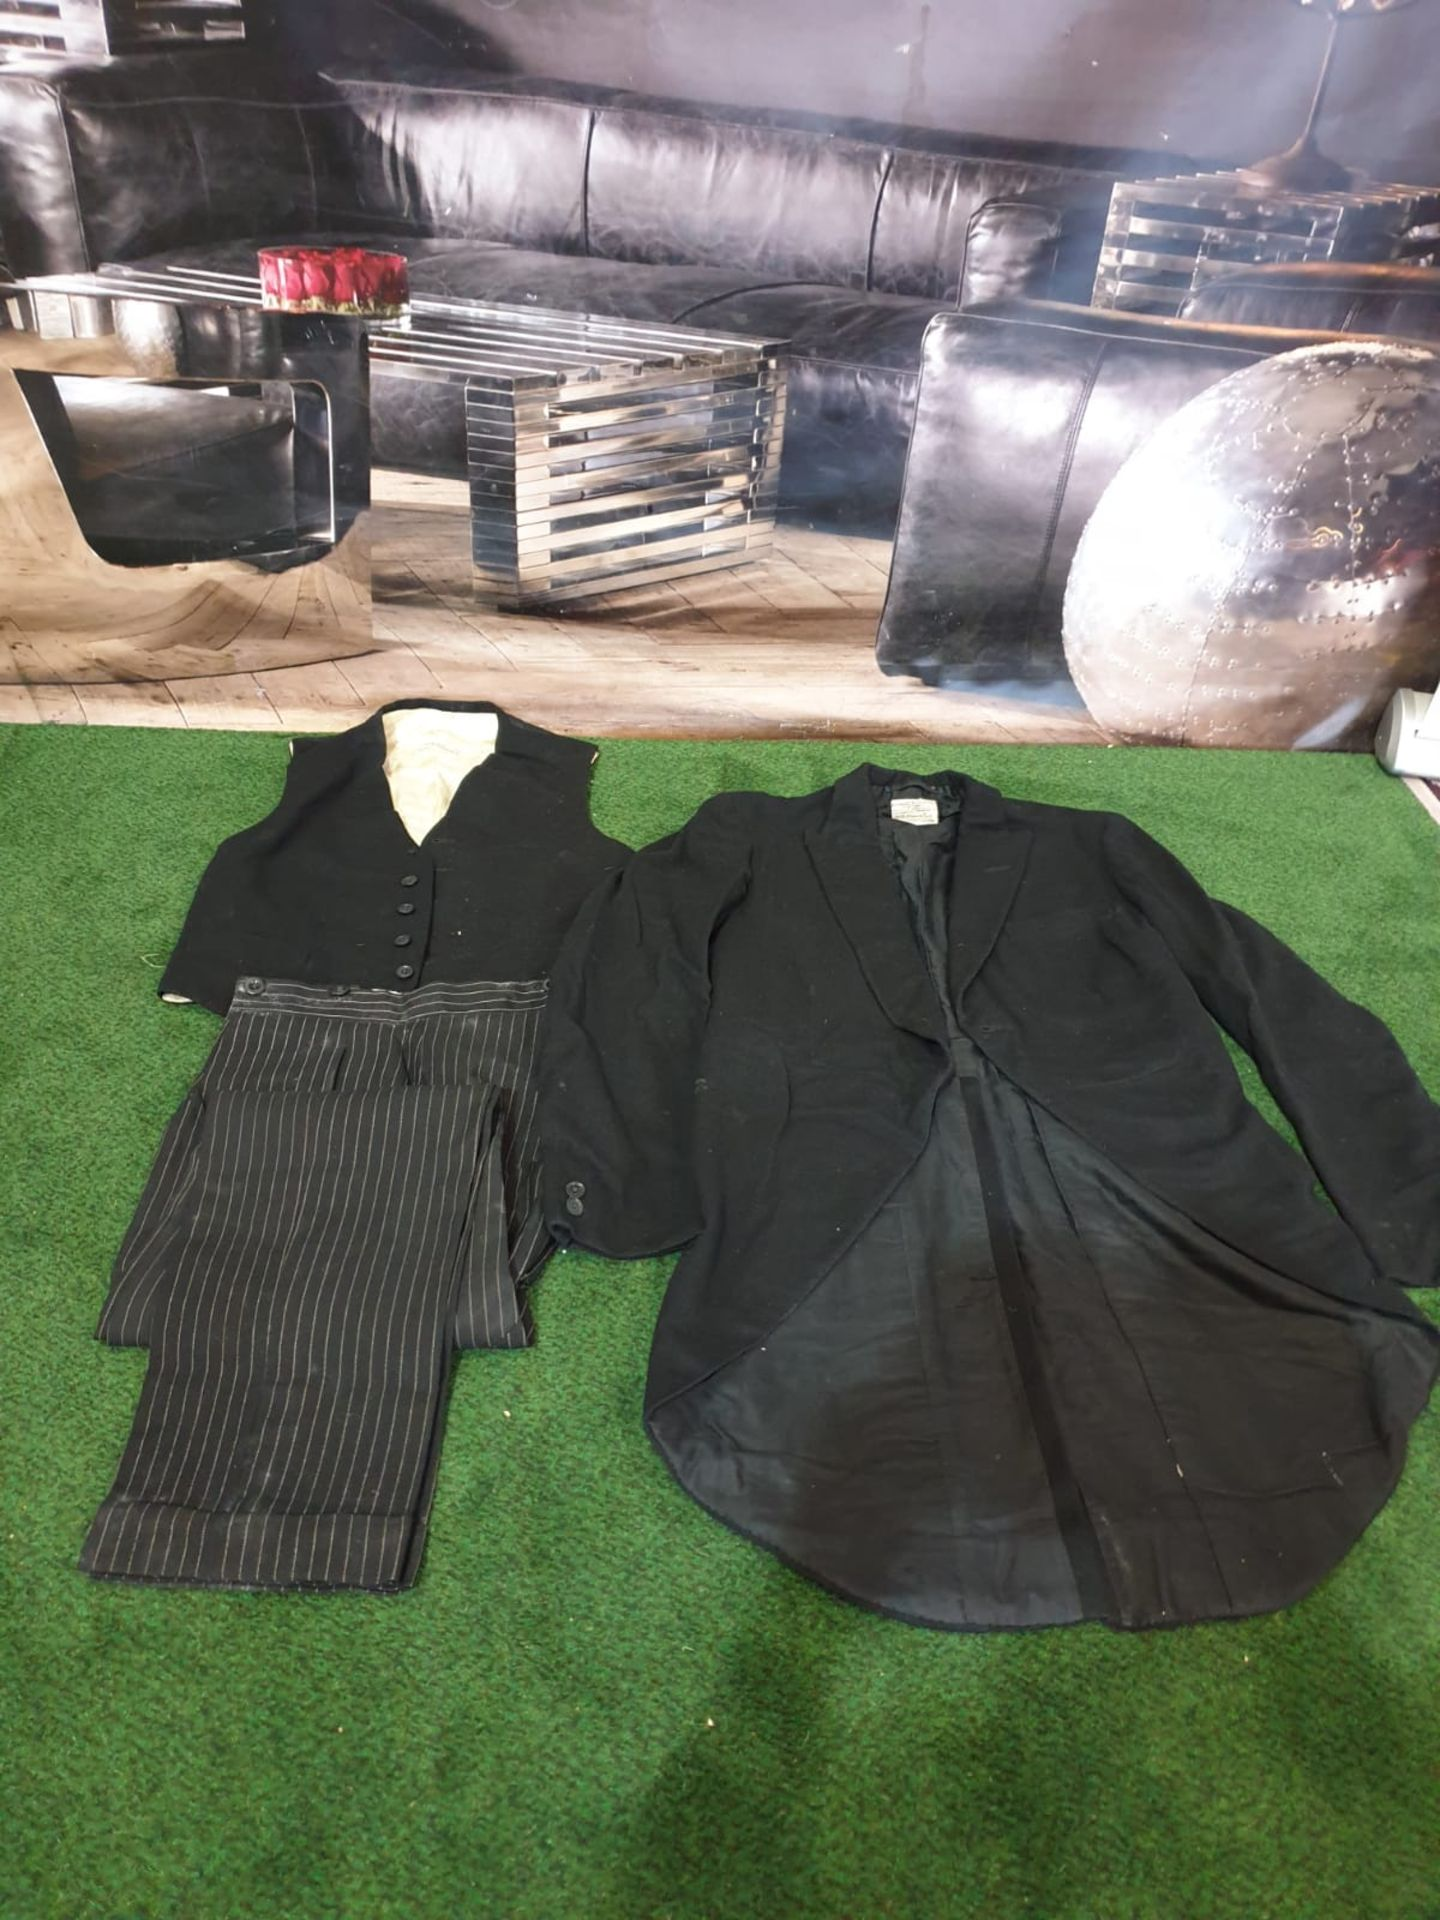 A Denman and Goddard Ltd 3 piece Eton suit consists of morning tailcoat, 2 x waistcoats and 2 x - Image 2 of 5